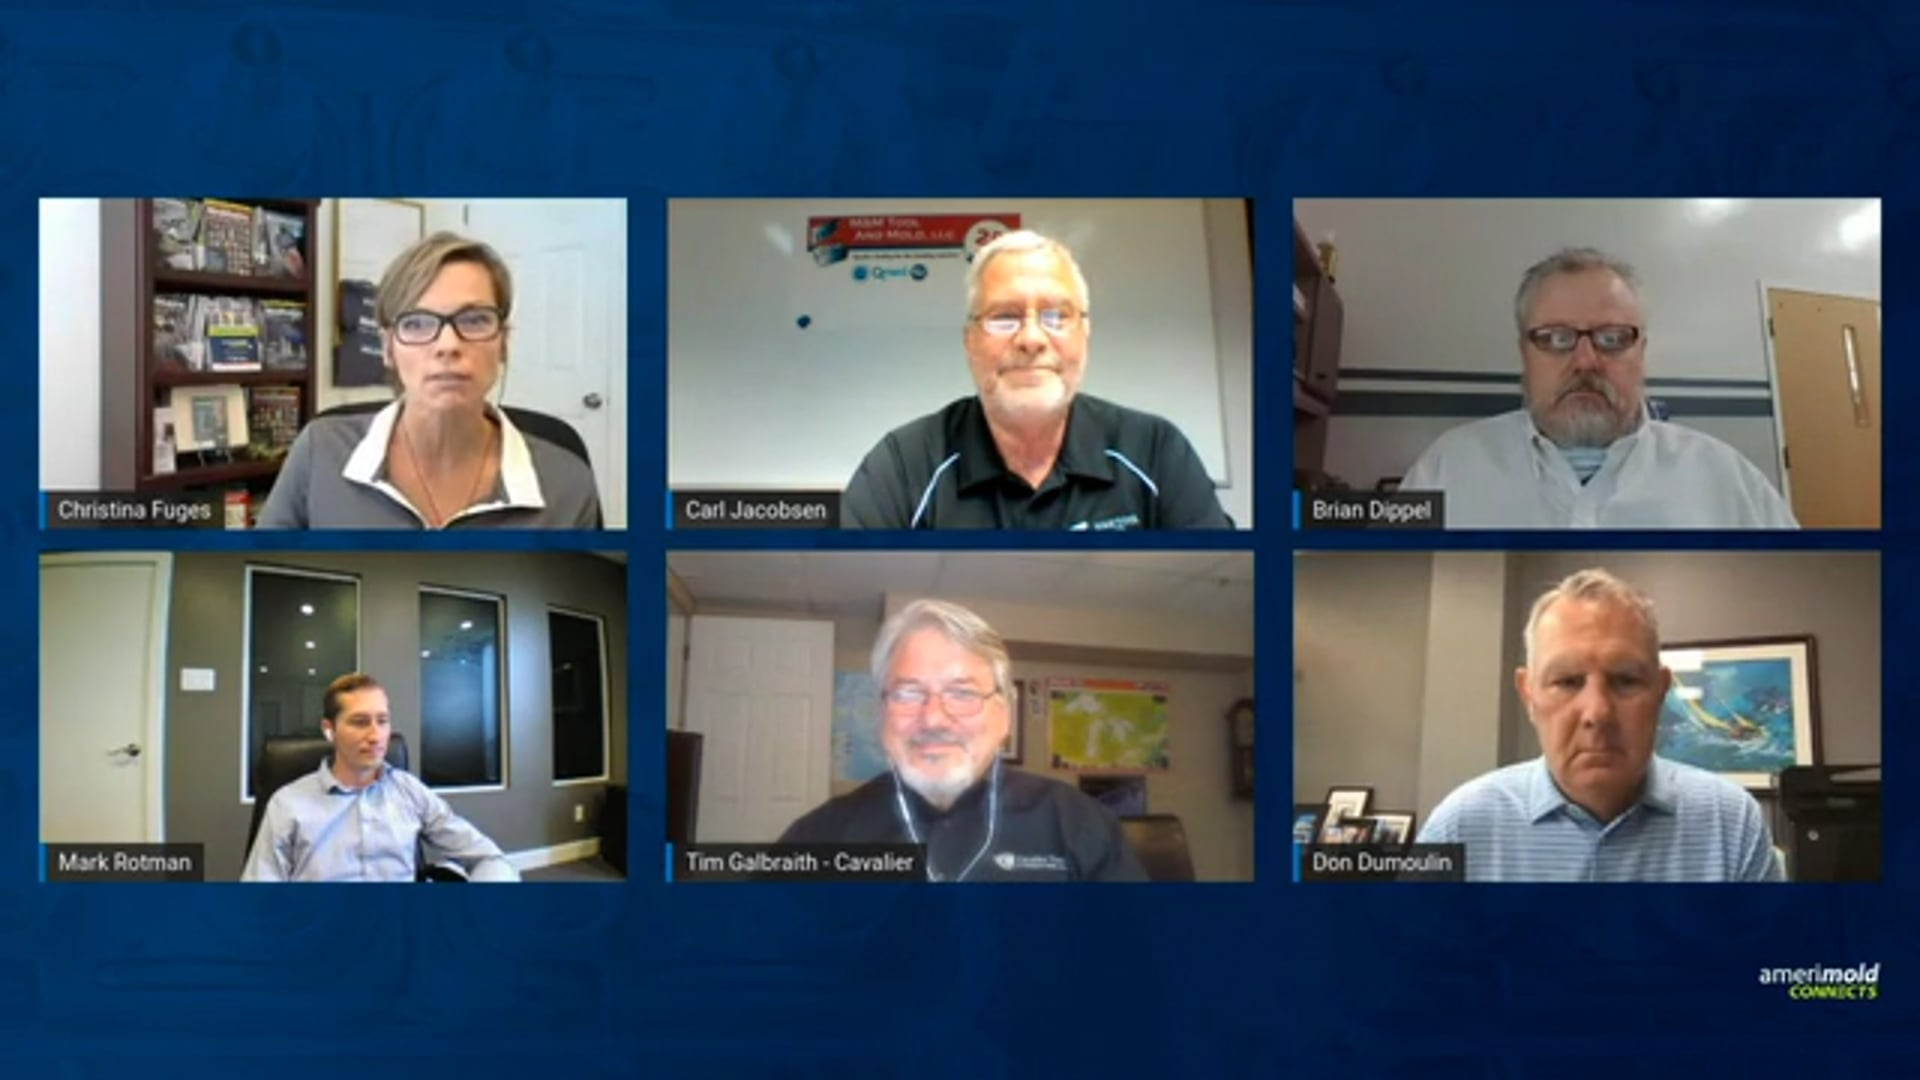 Leading Mold Manufacturers Share 30 Best Practices in 30 Minutes on Ways to Improve Efficiencies